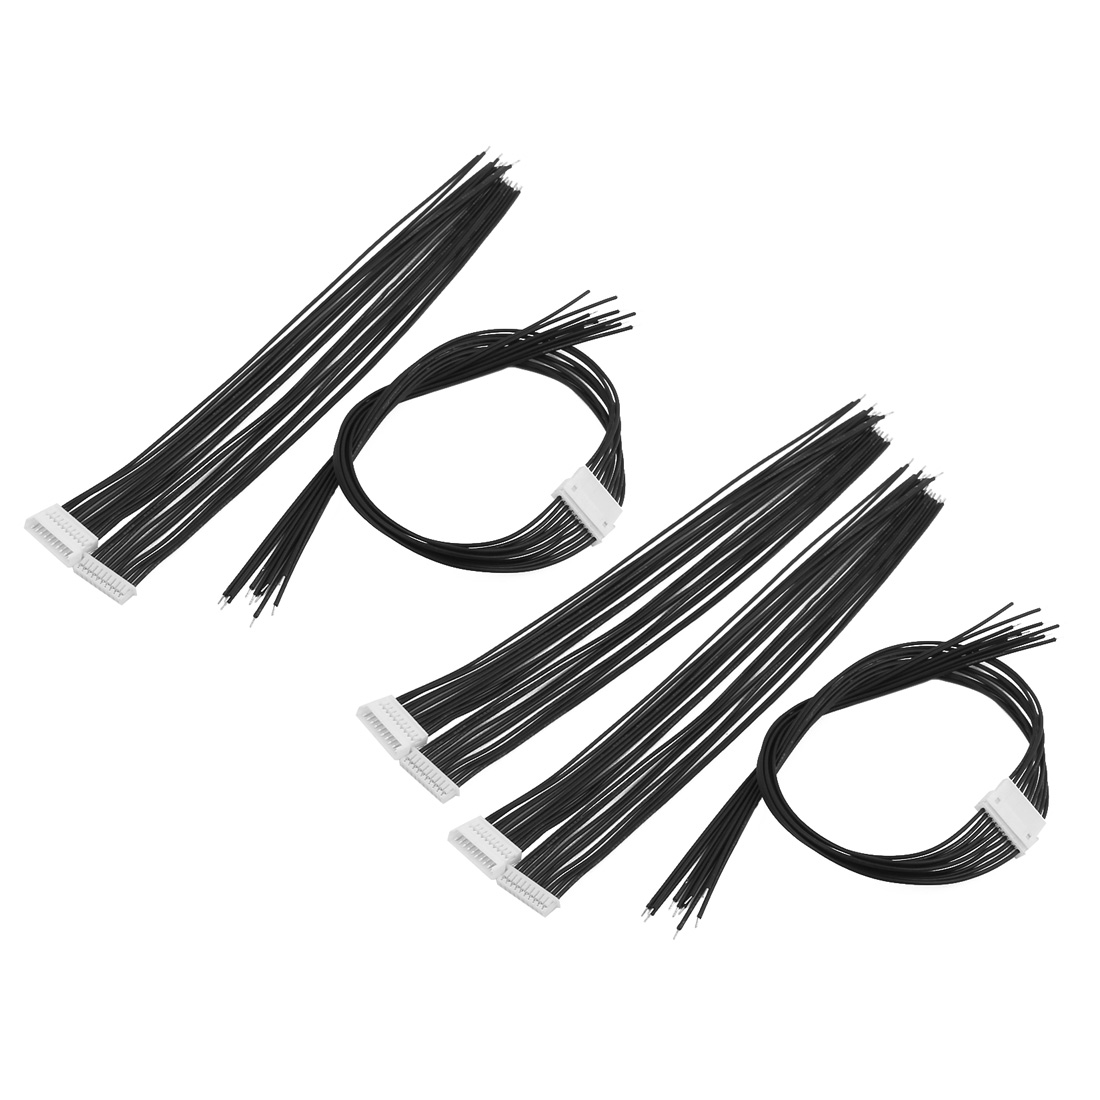 5Pair 150mm Length 1.25mm Pitch Male And Female CKM 10 Terminals Extension Cable Black